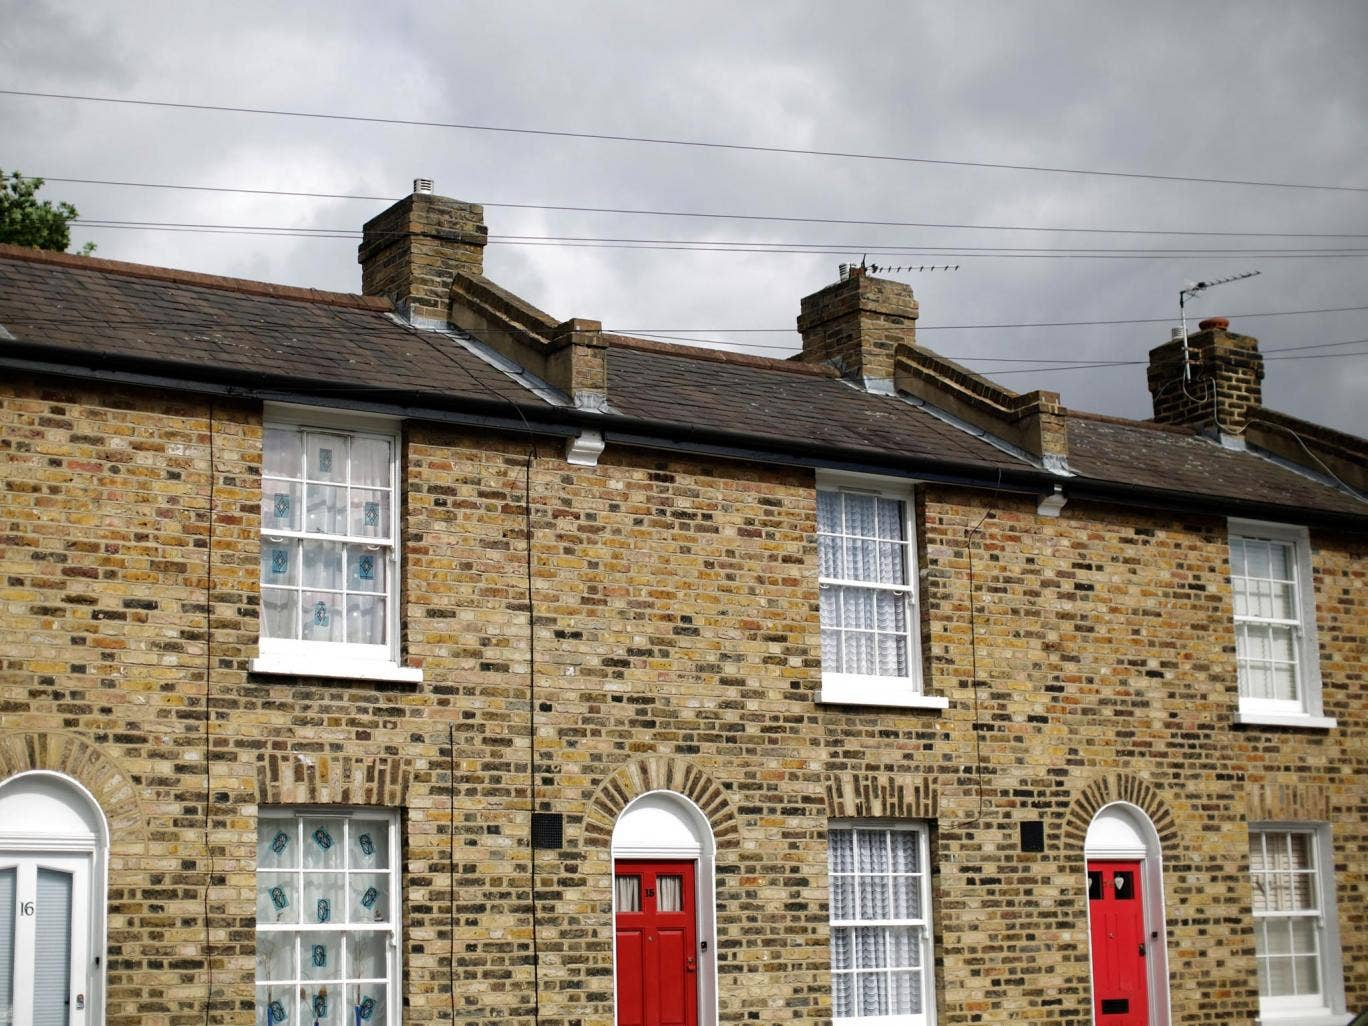 Local authorities are calling for an overhaul of the system for prosecuting rogue landlords